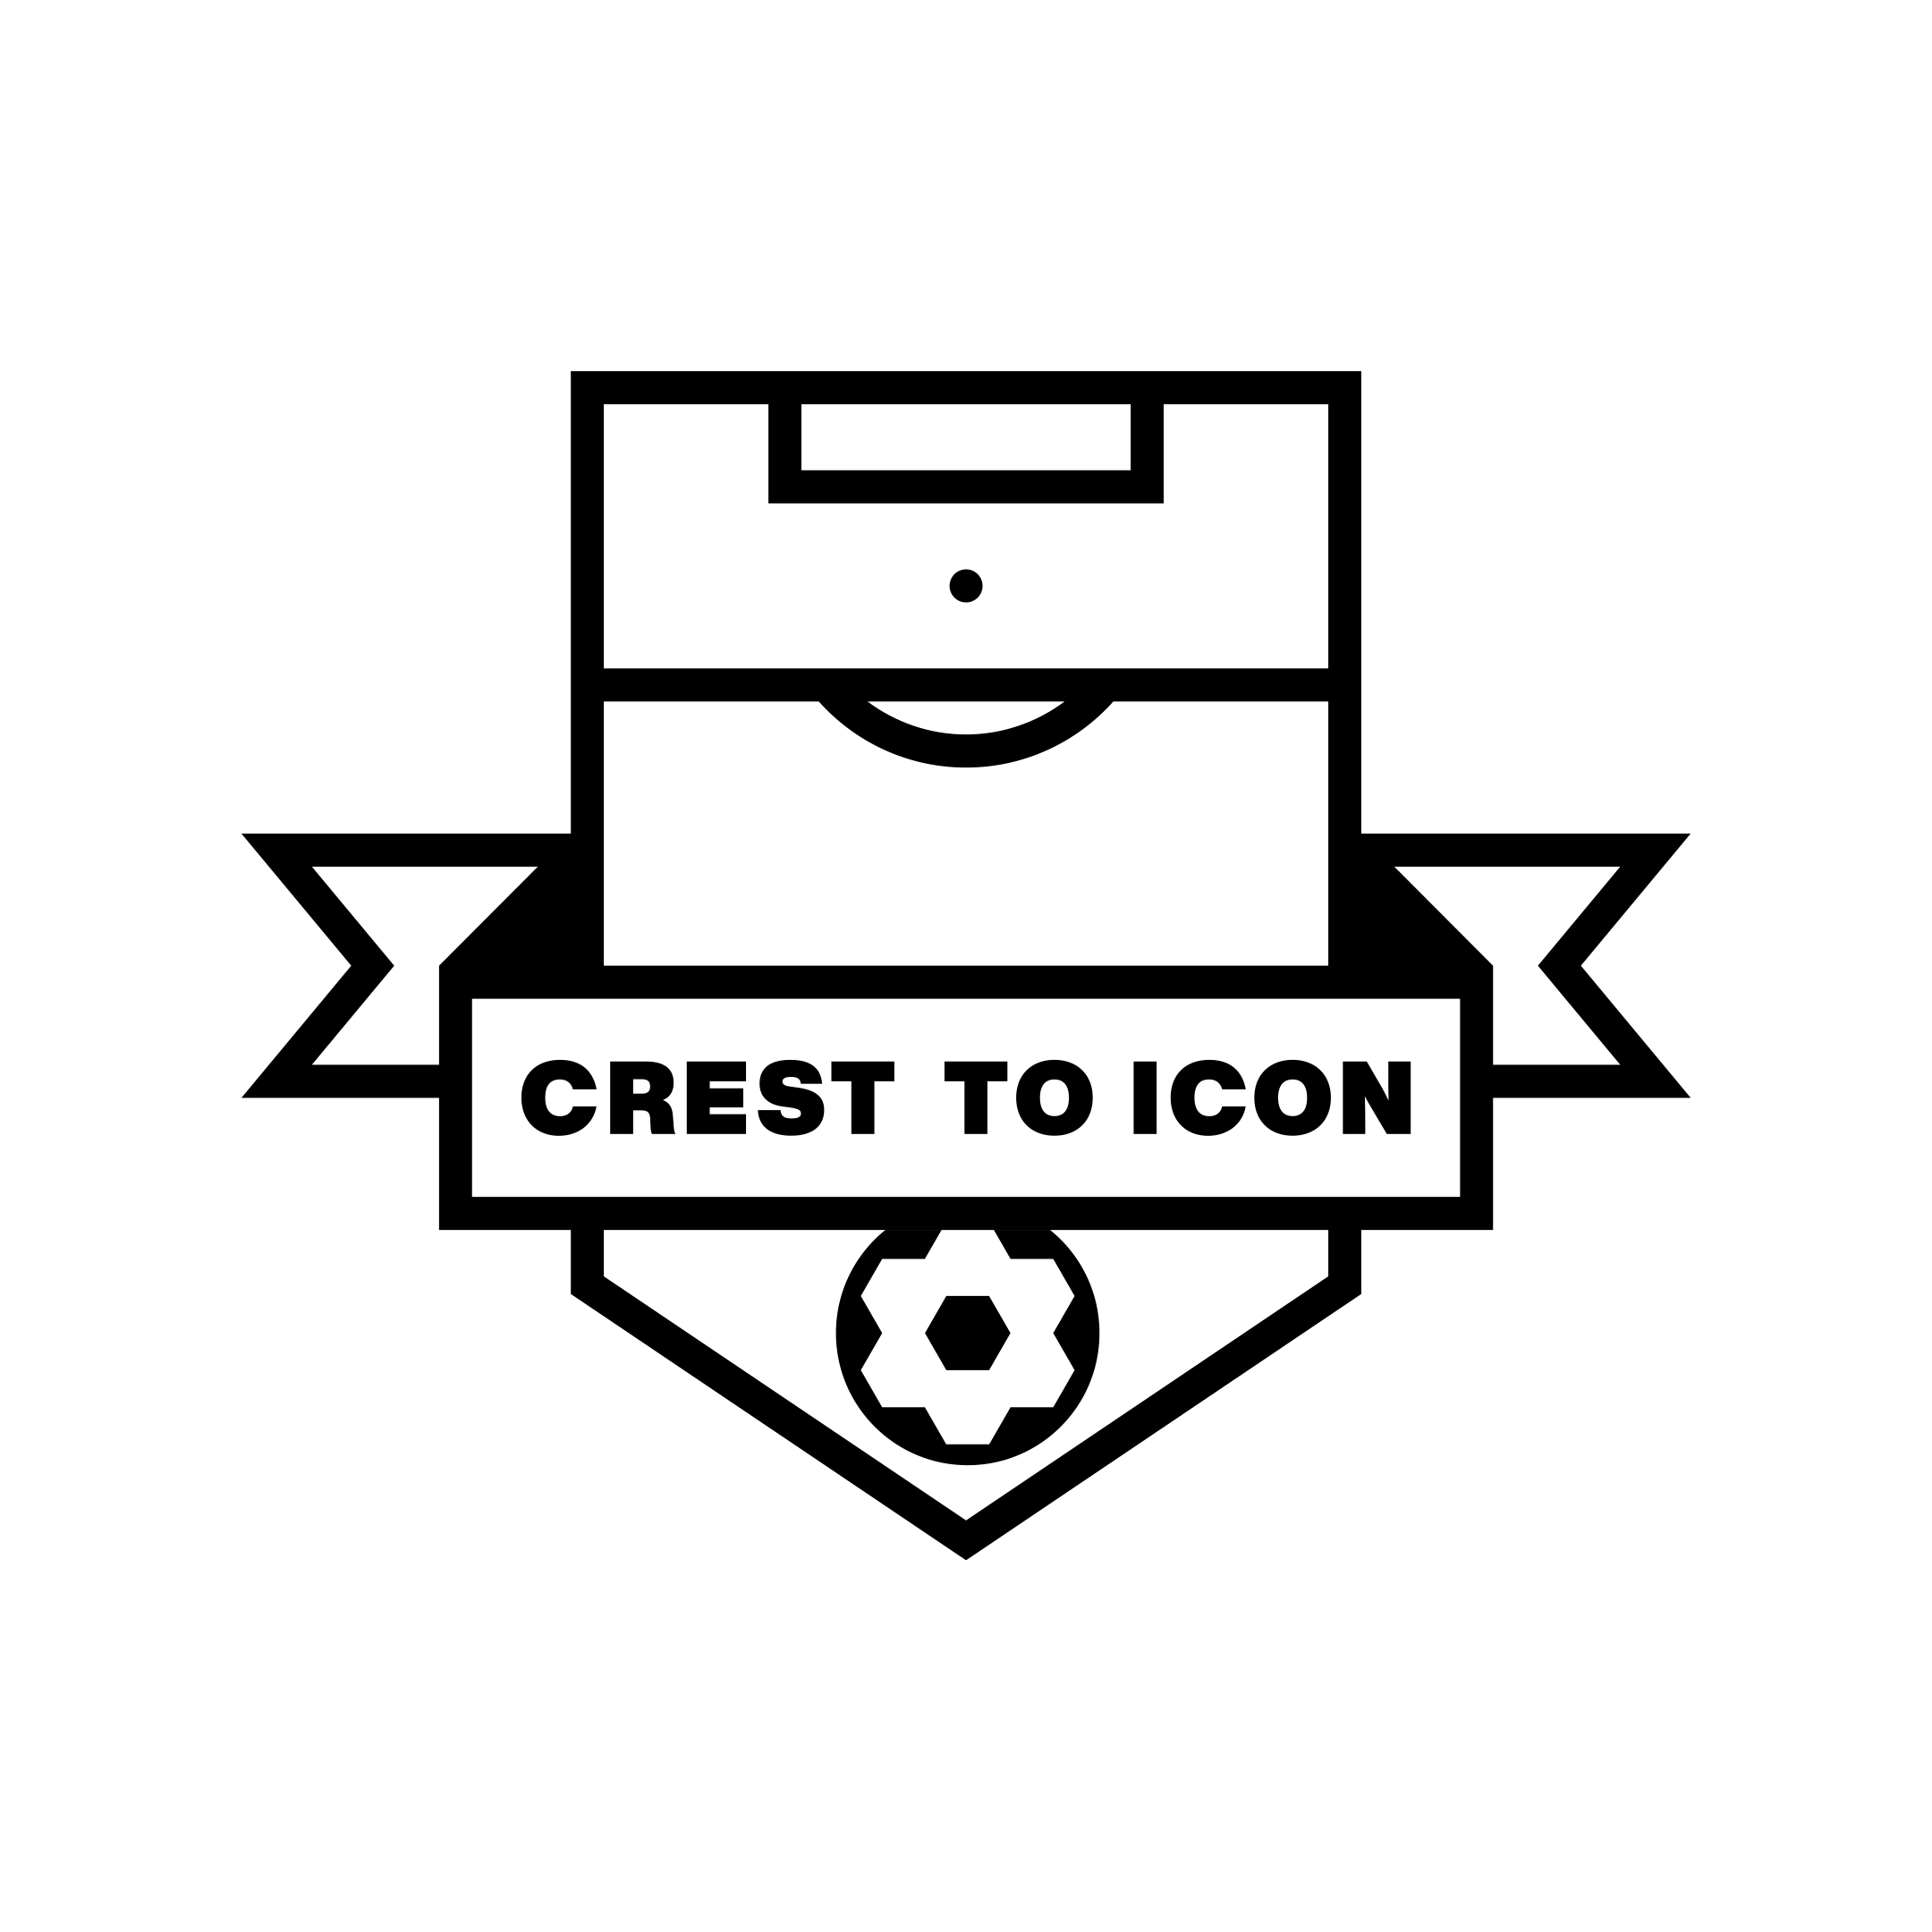 Crest to icon